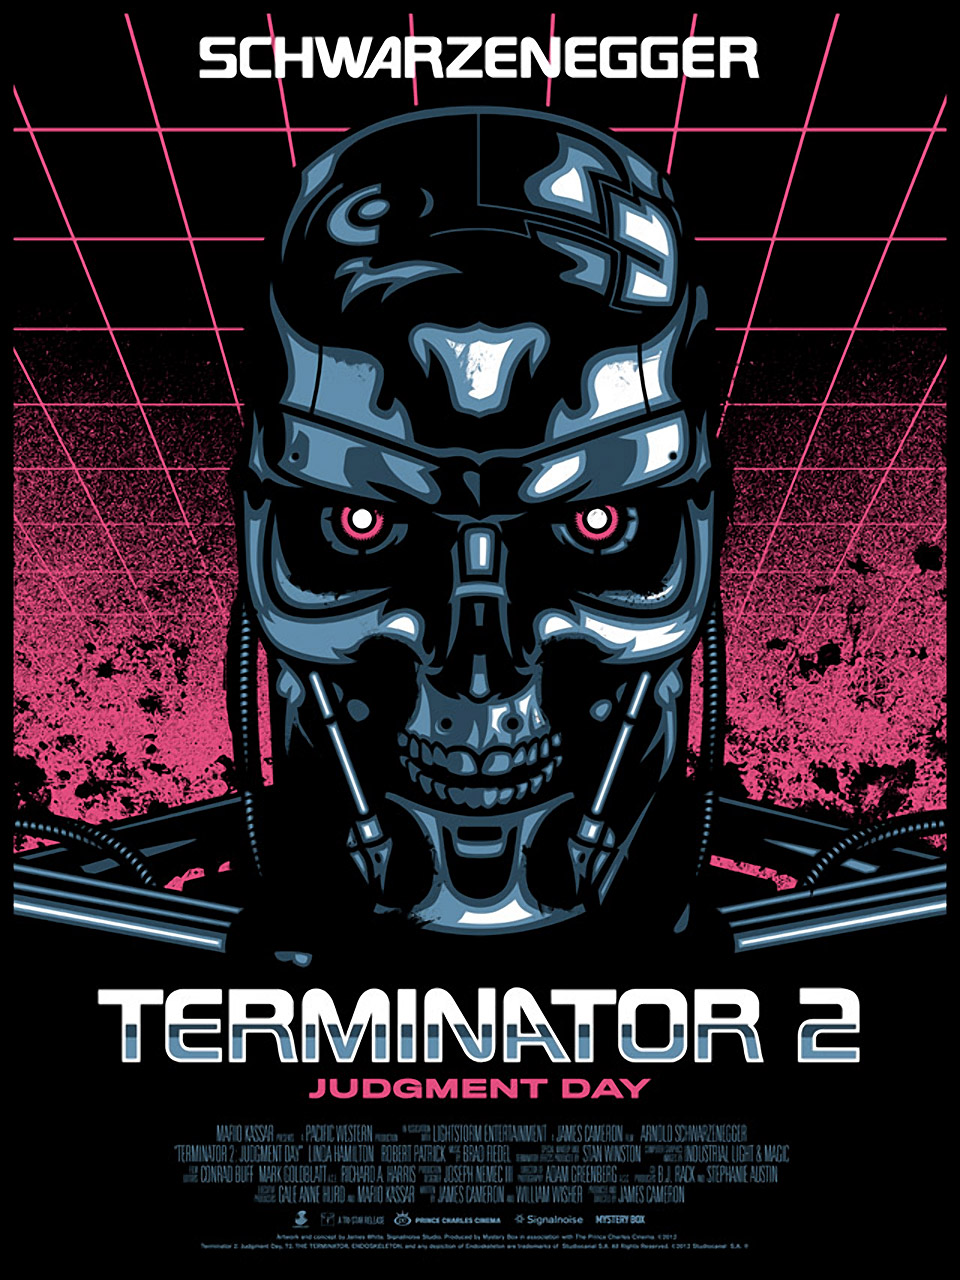 Intimidating Terminator 2: Judgment Day Prints